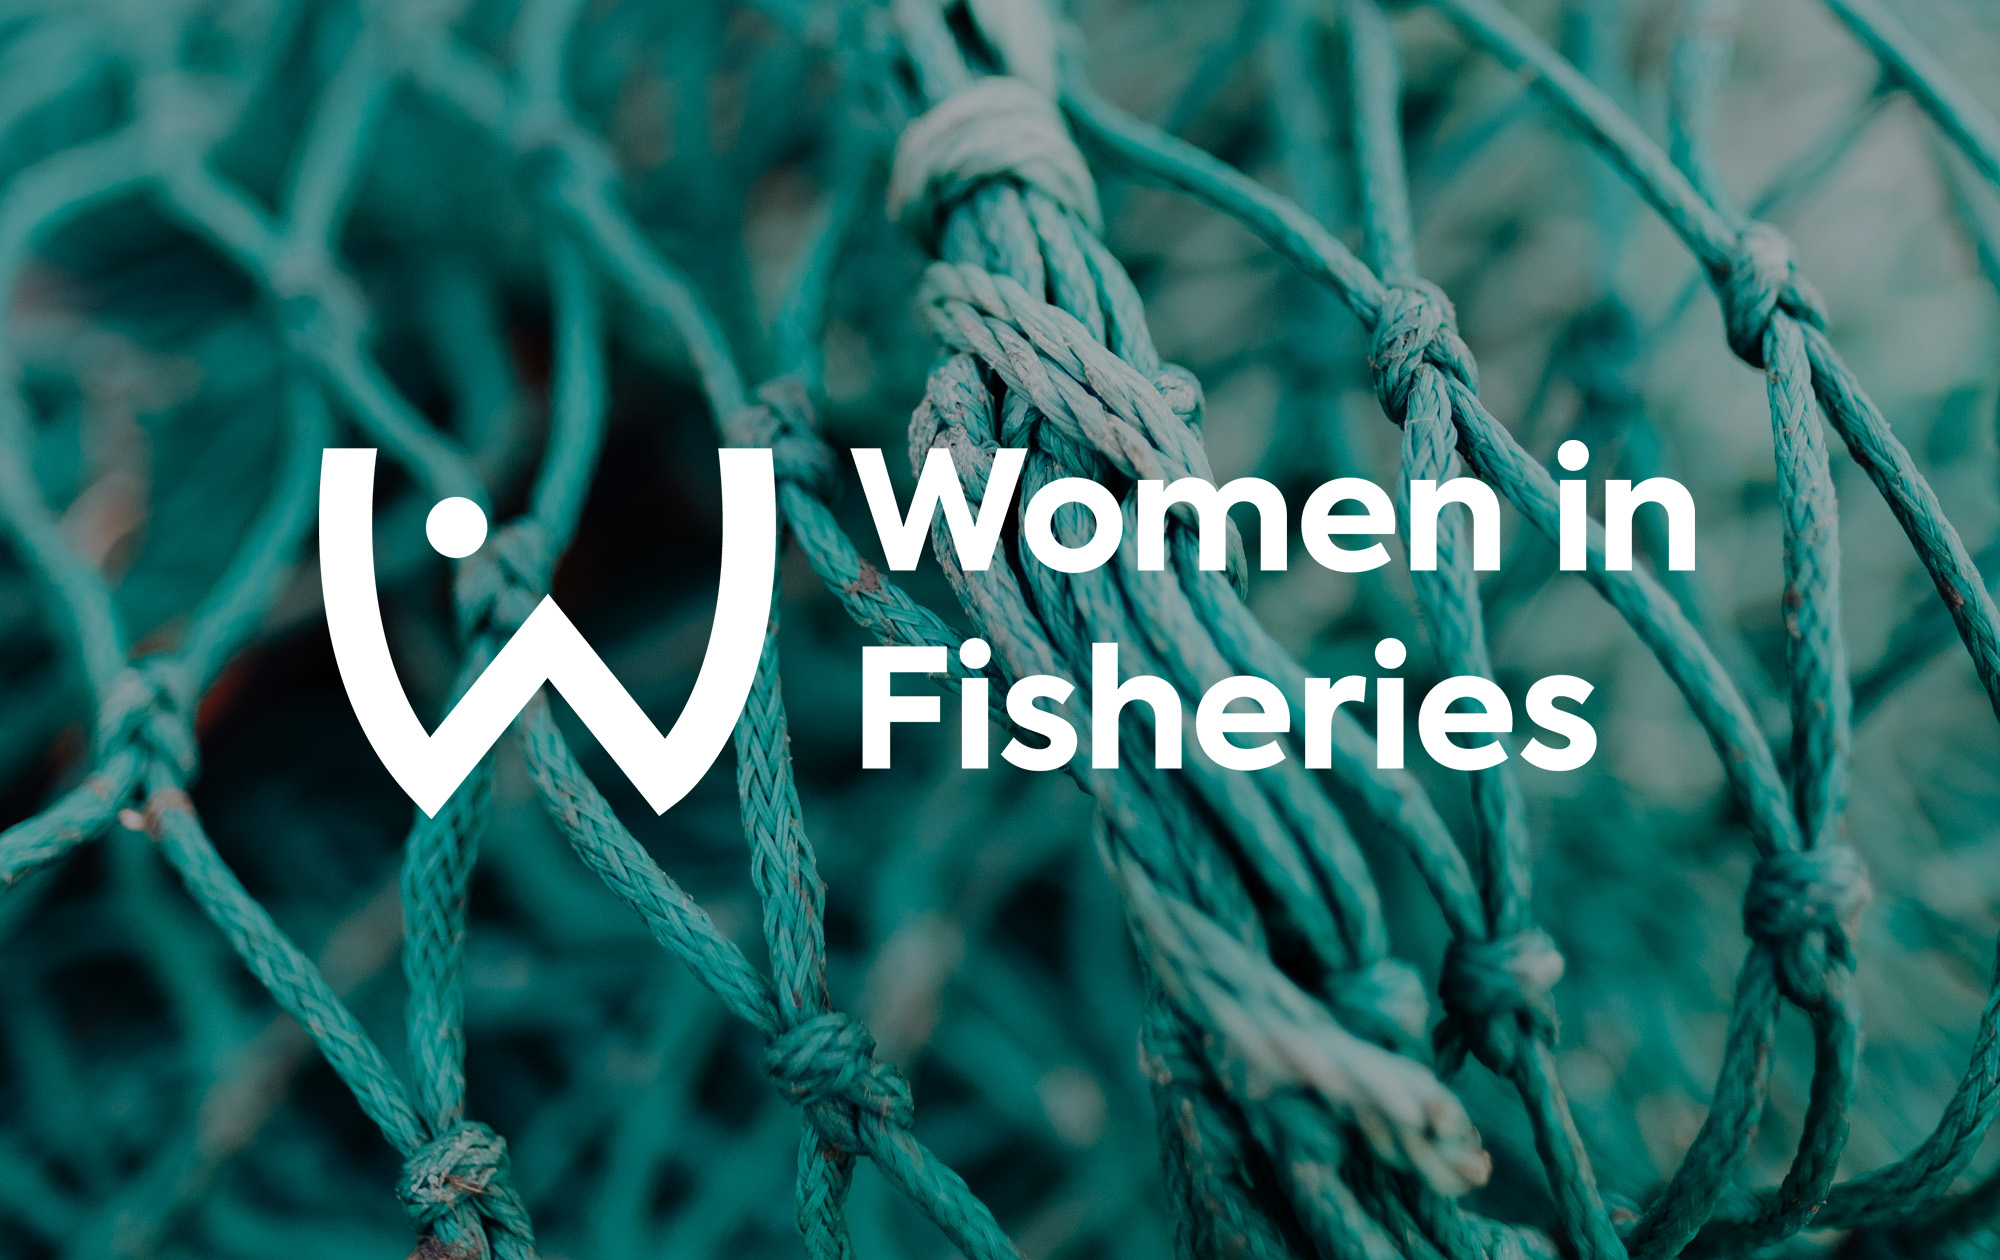 Women in Fisheries website launched